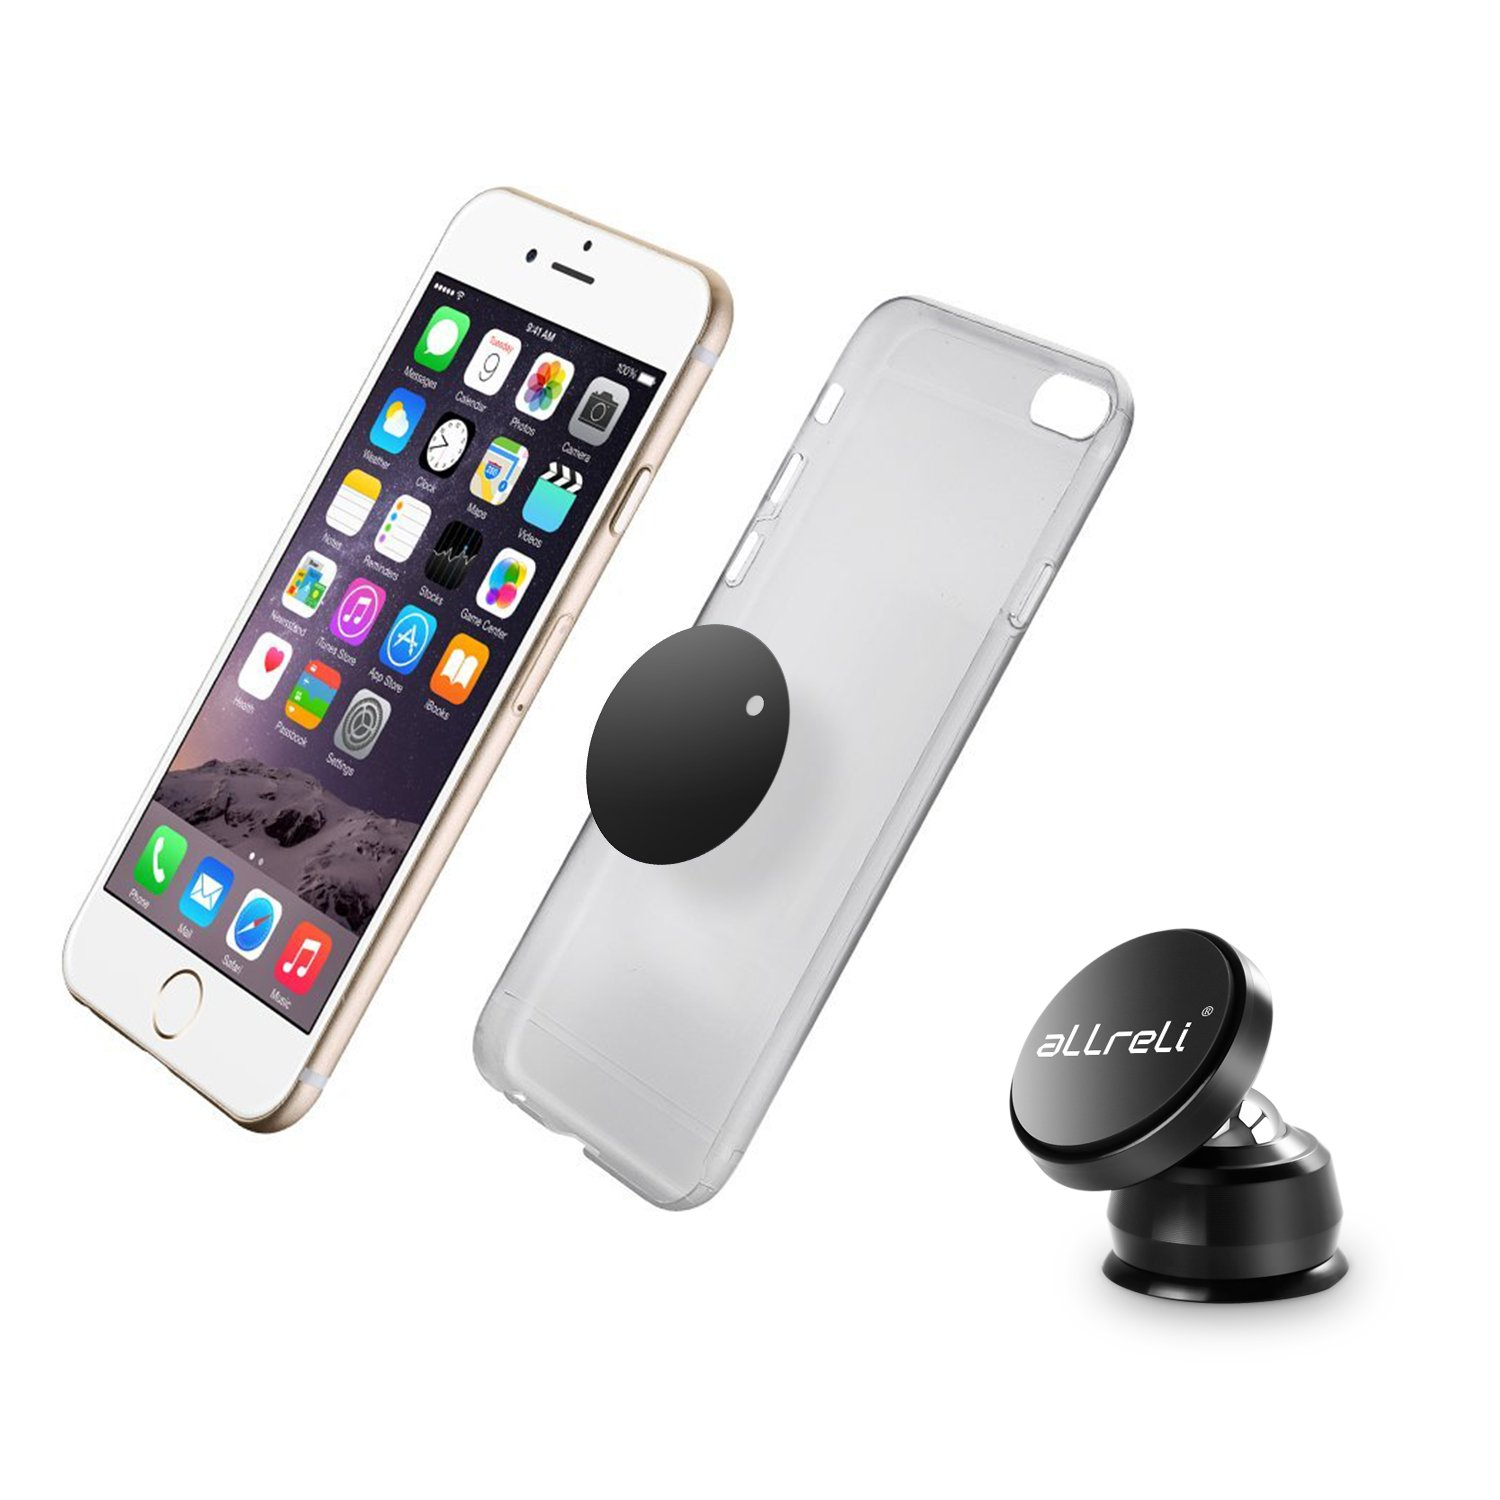 aLLreLi Magnetic Car Mount for iPhone XS Max XR 8 7 6 Plus Galaxy S9 S8 Plus S7 S6  Note 9 8 and More Magnetic Phone Holder for Car Dashboard Strong Magnet Phone Mount 4351483810